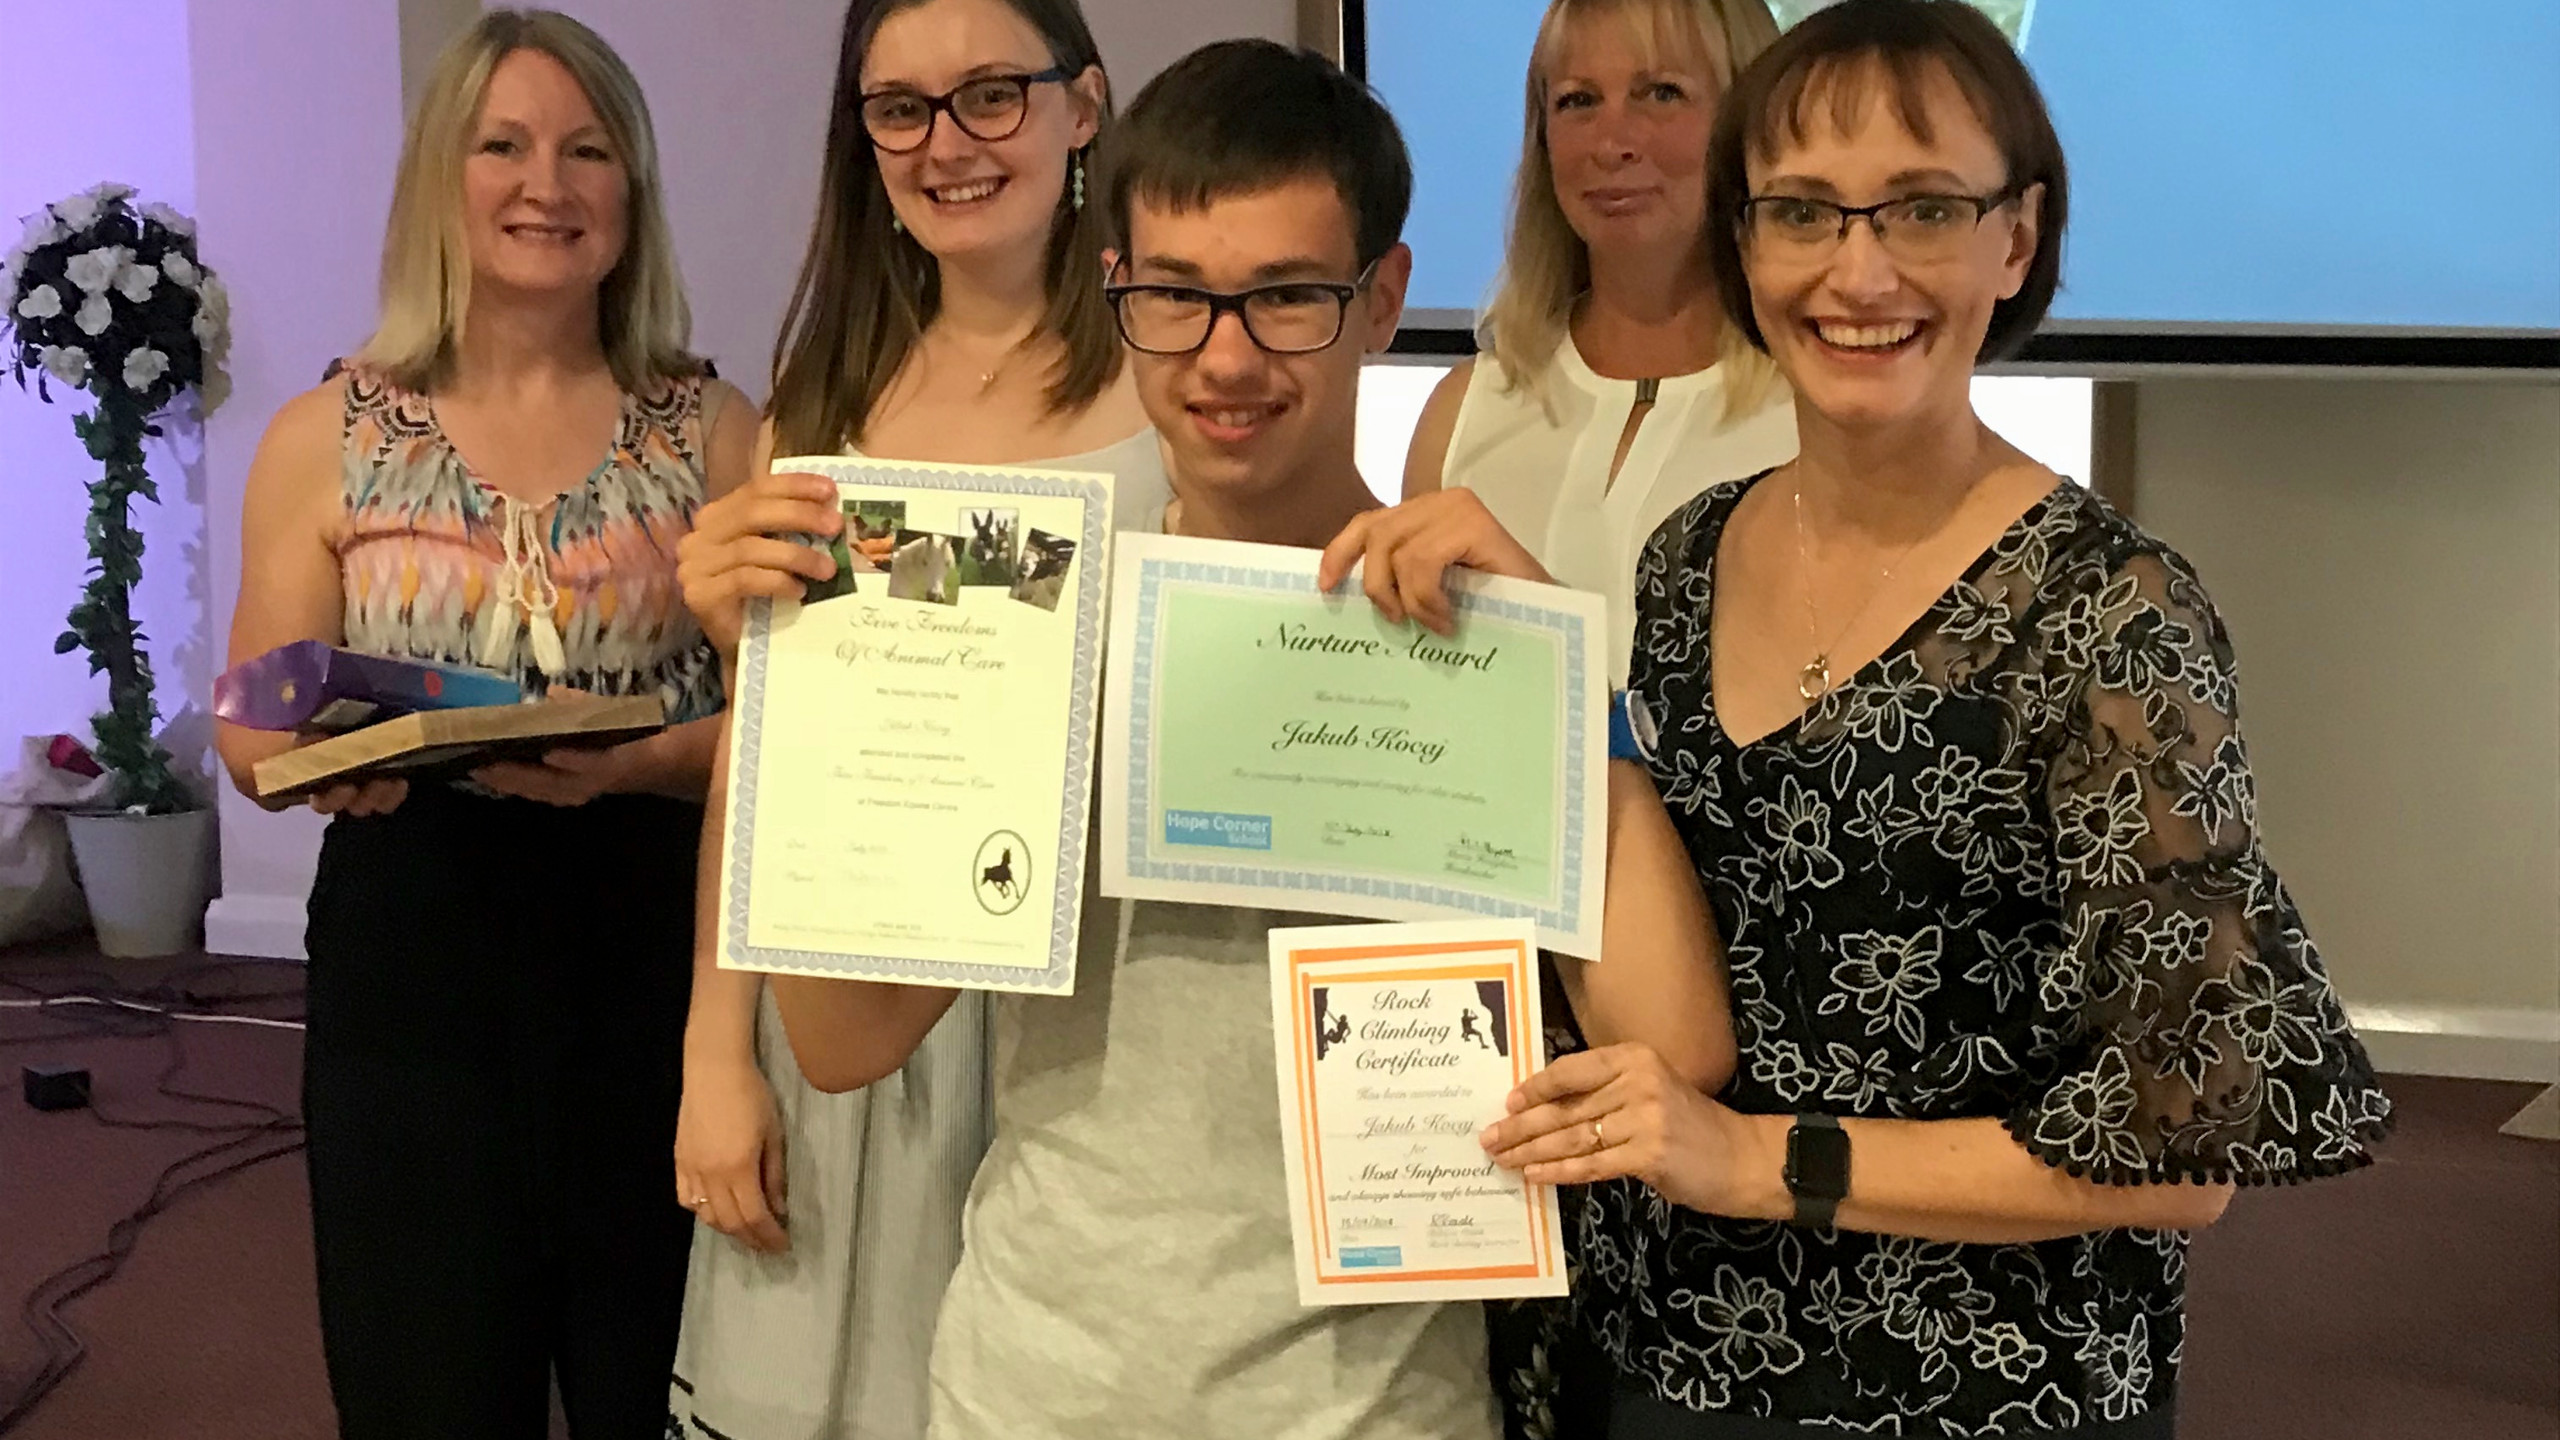 Theresa Worrall (right), one of our school governors, presenting awards to one of our school leavers.